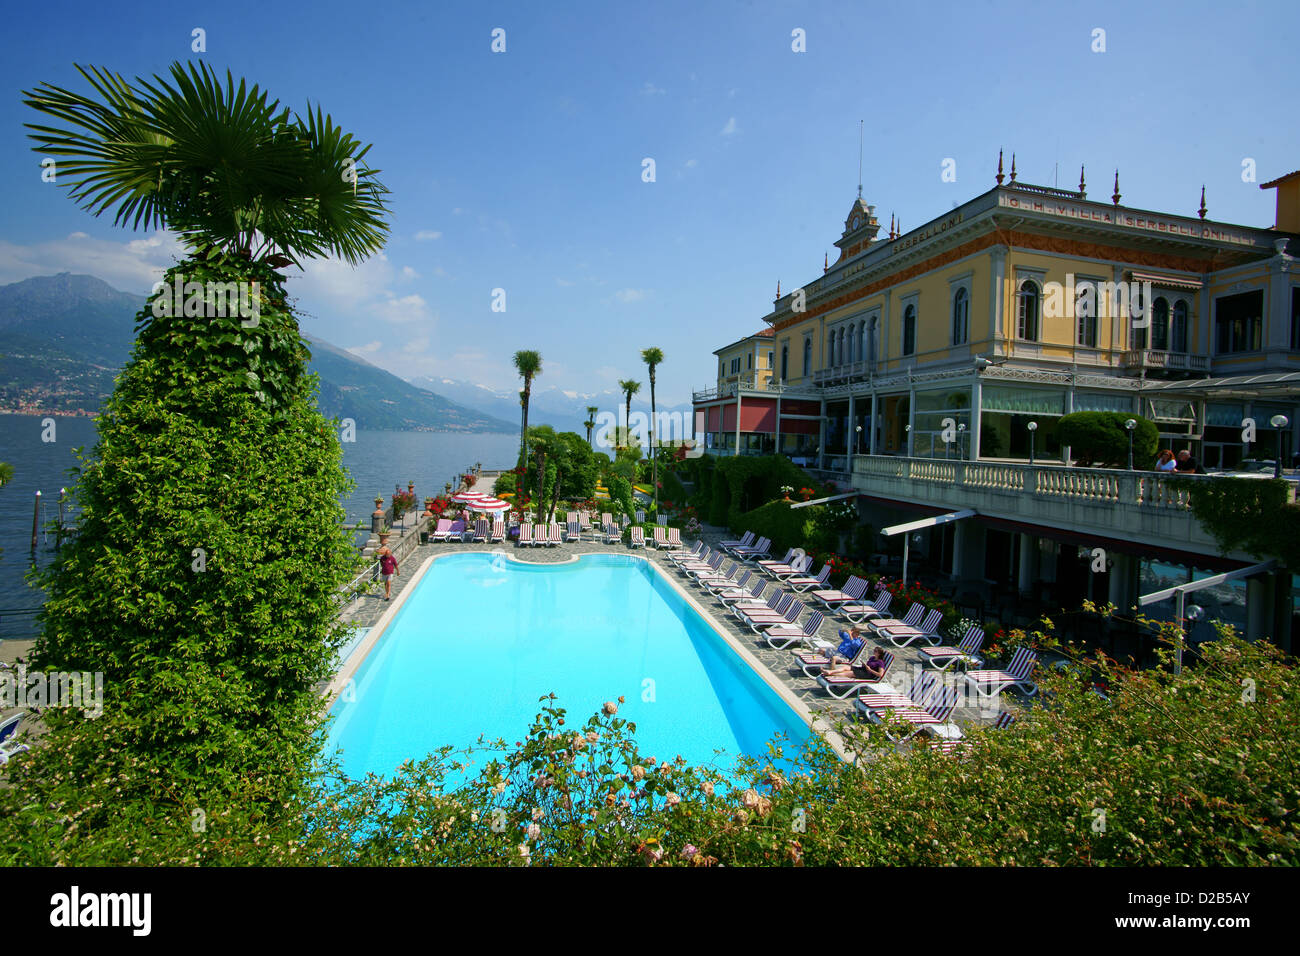 Bellagio hotel swimming pool lke water view moutain comer stock photo royalty free for Hotels in bologna italy with swimming pool